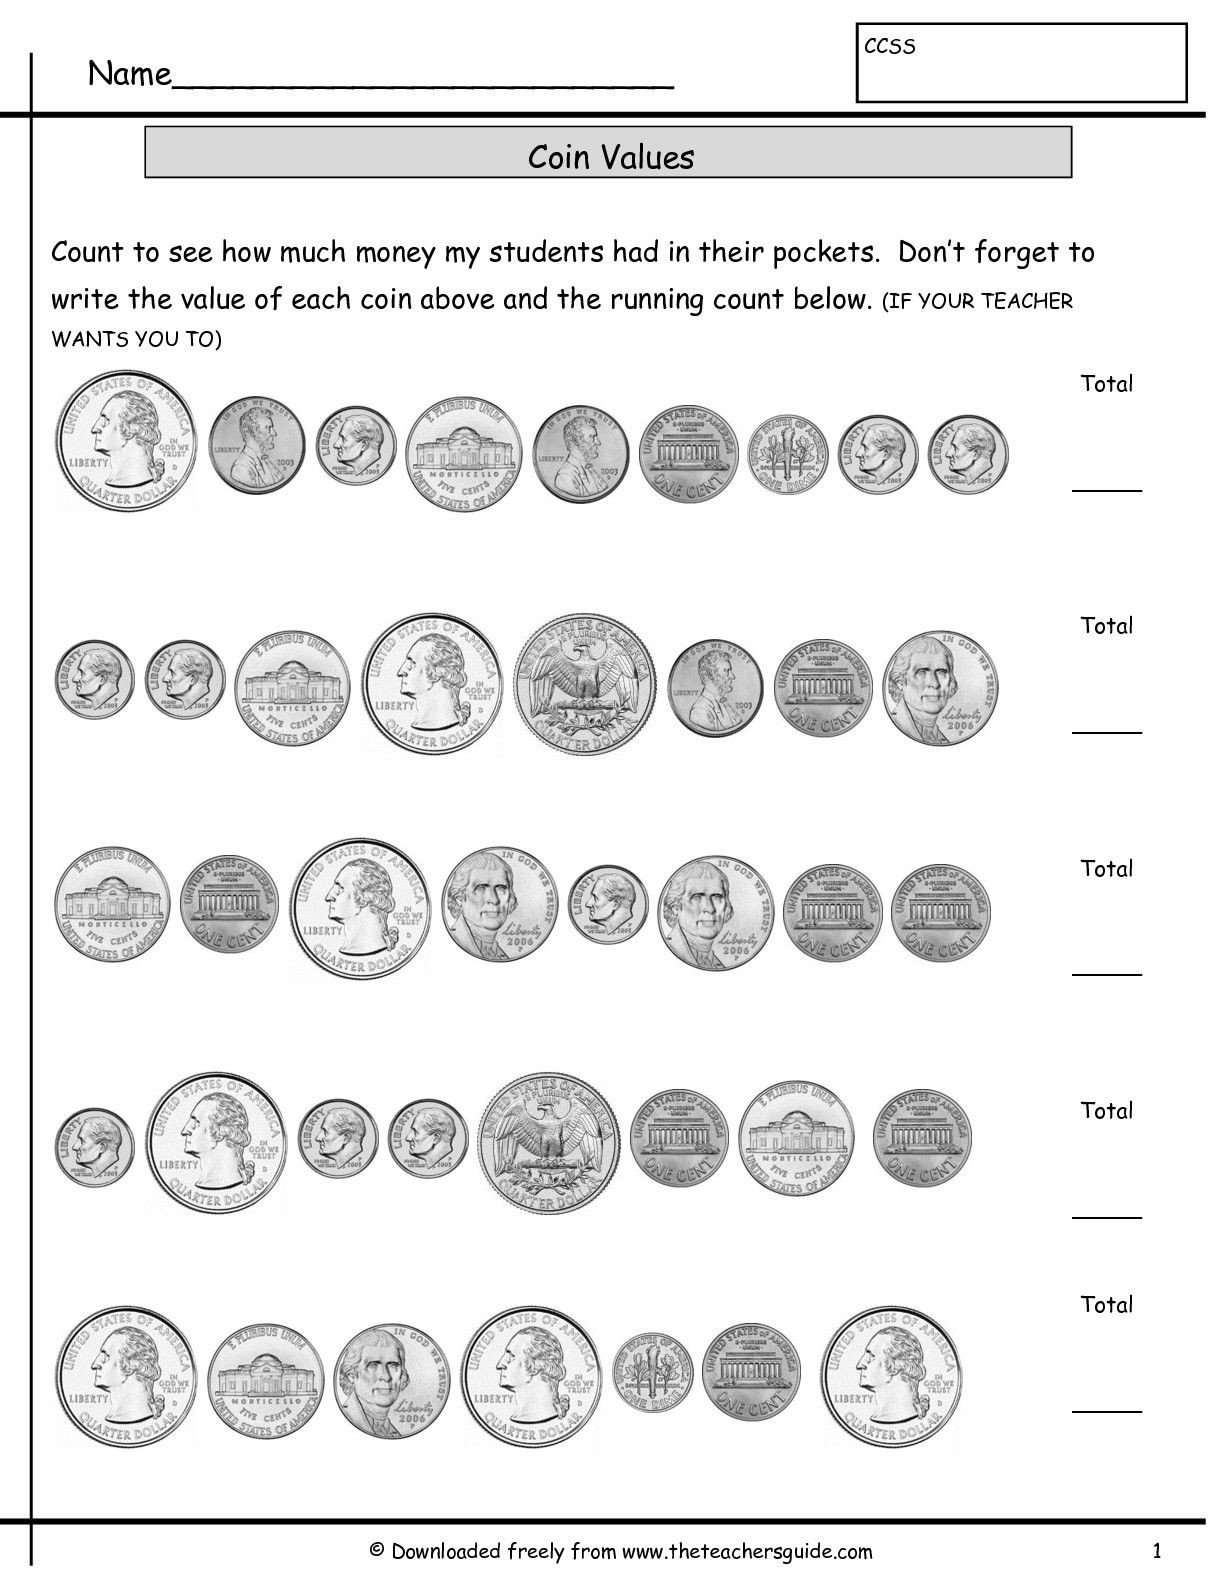 Free Counting Coins Worksheets Counting Coins Worksheets From the Teacher S Guide